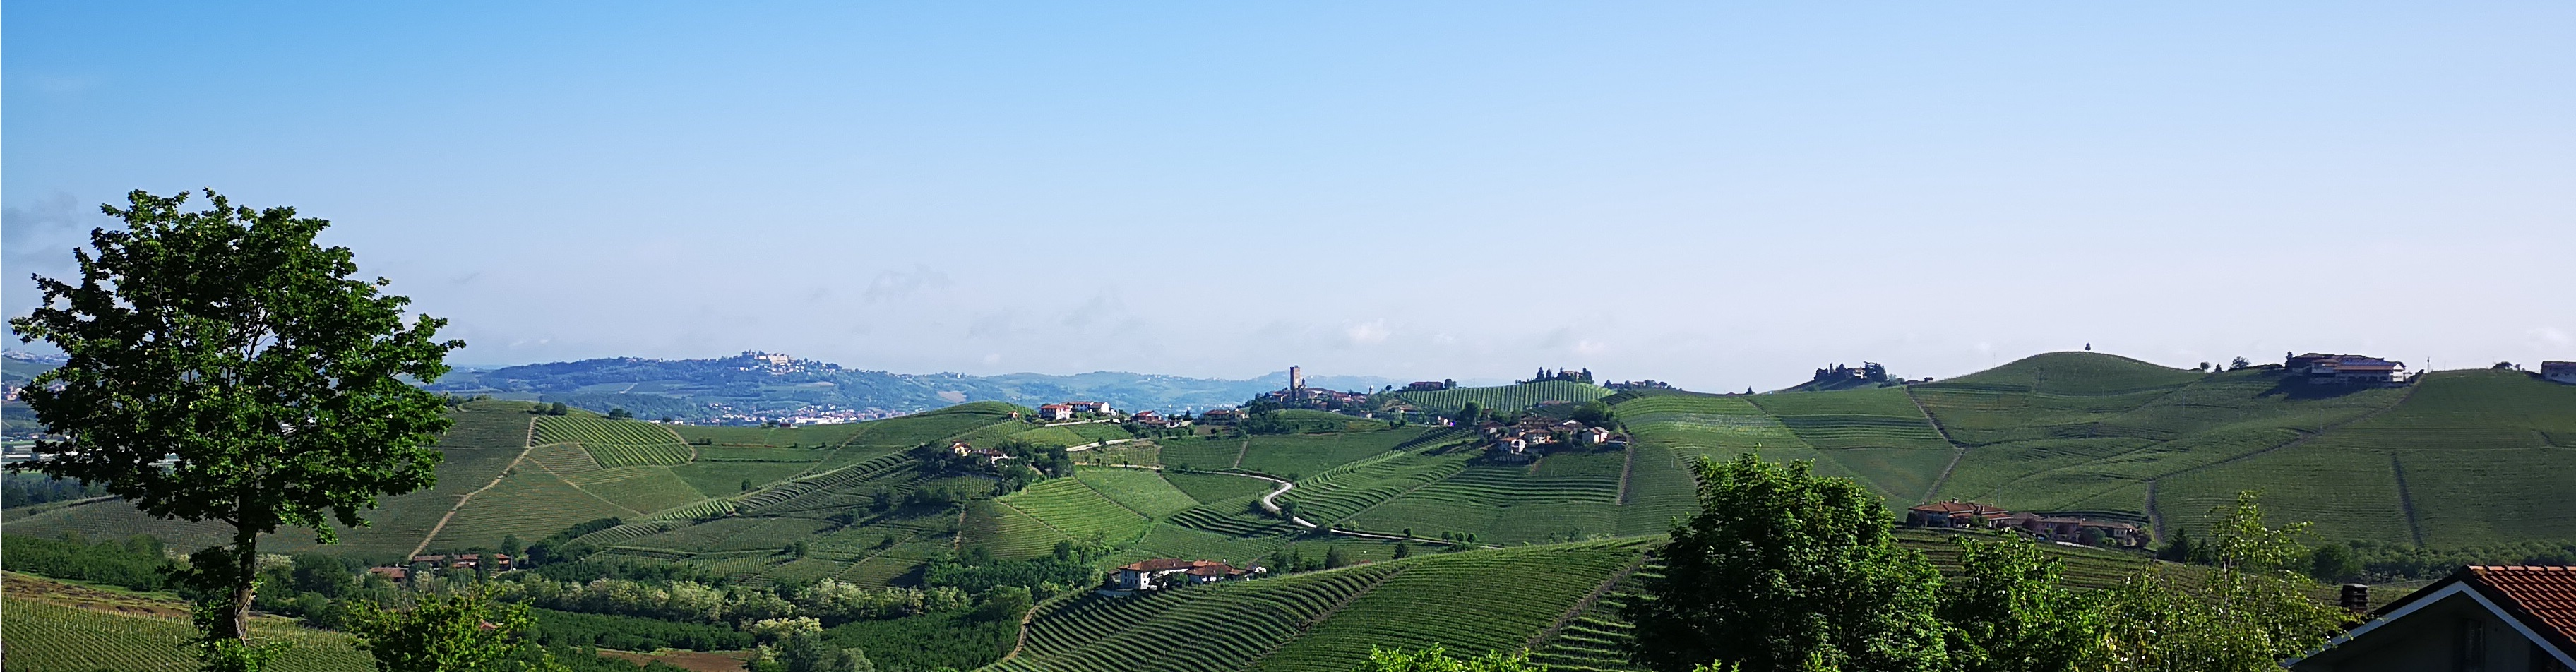 Vineyards of Barbaresco